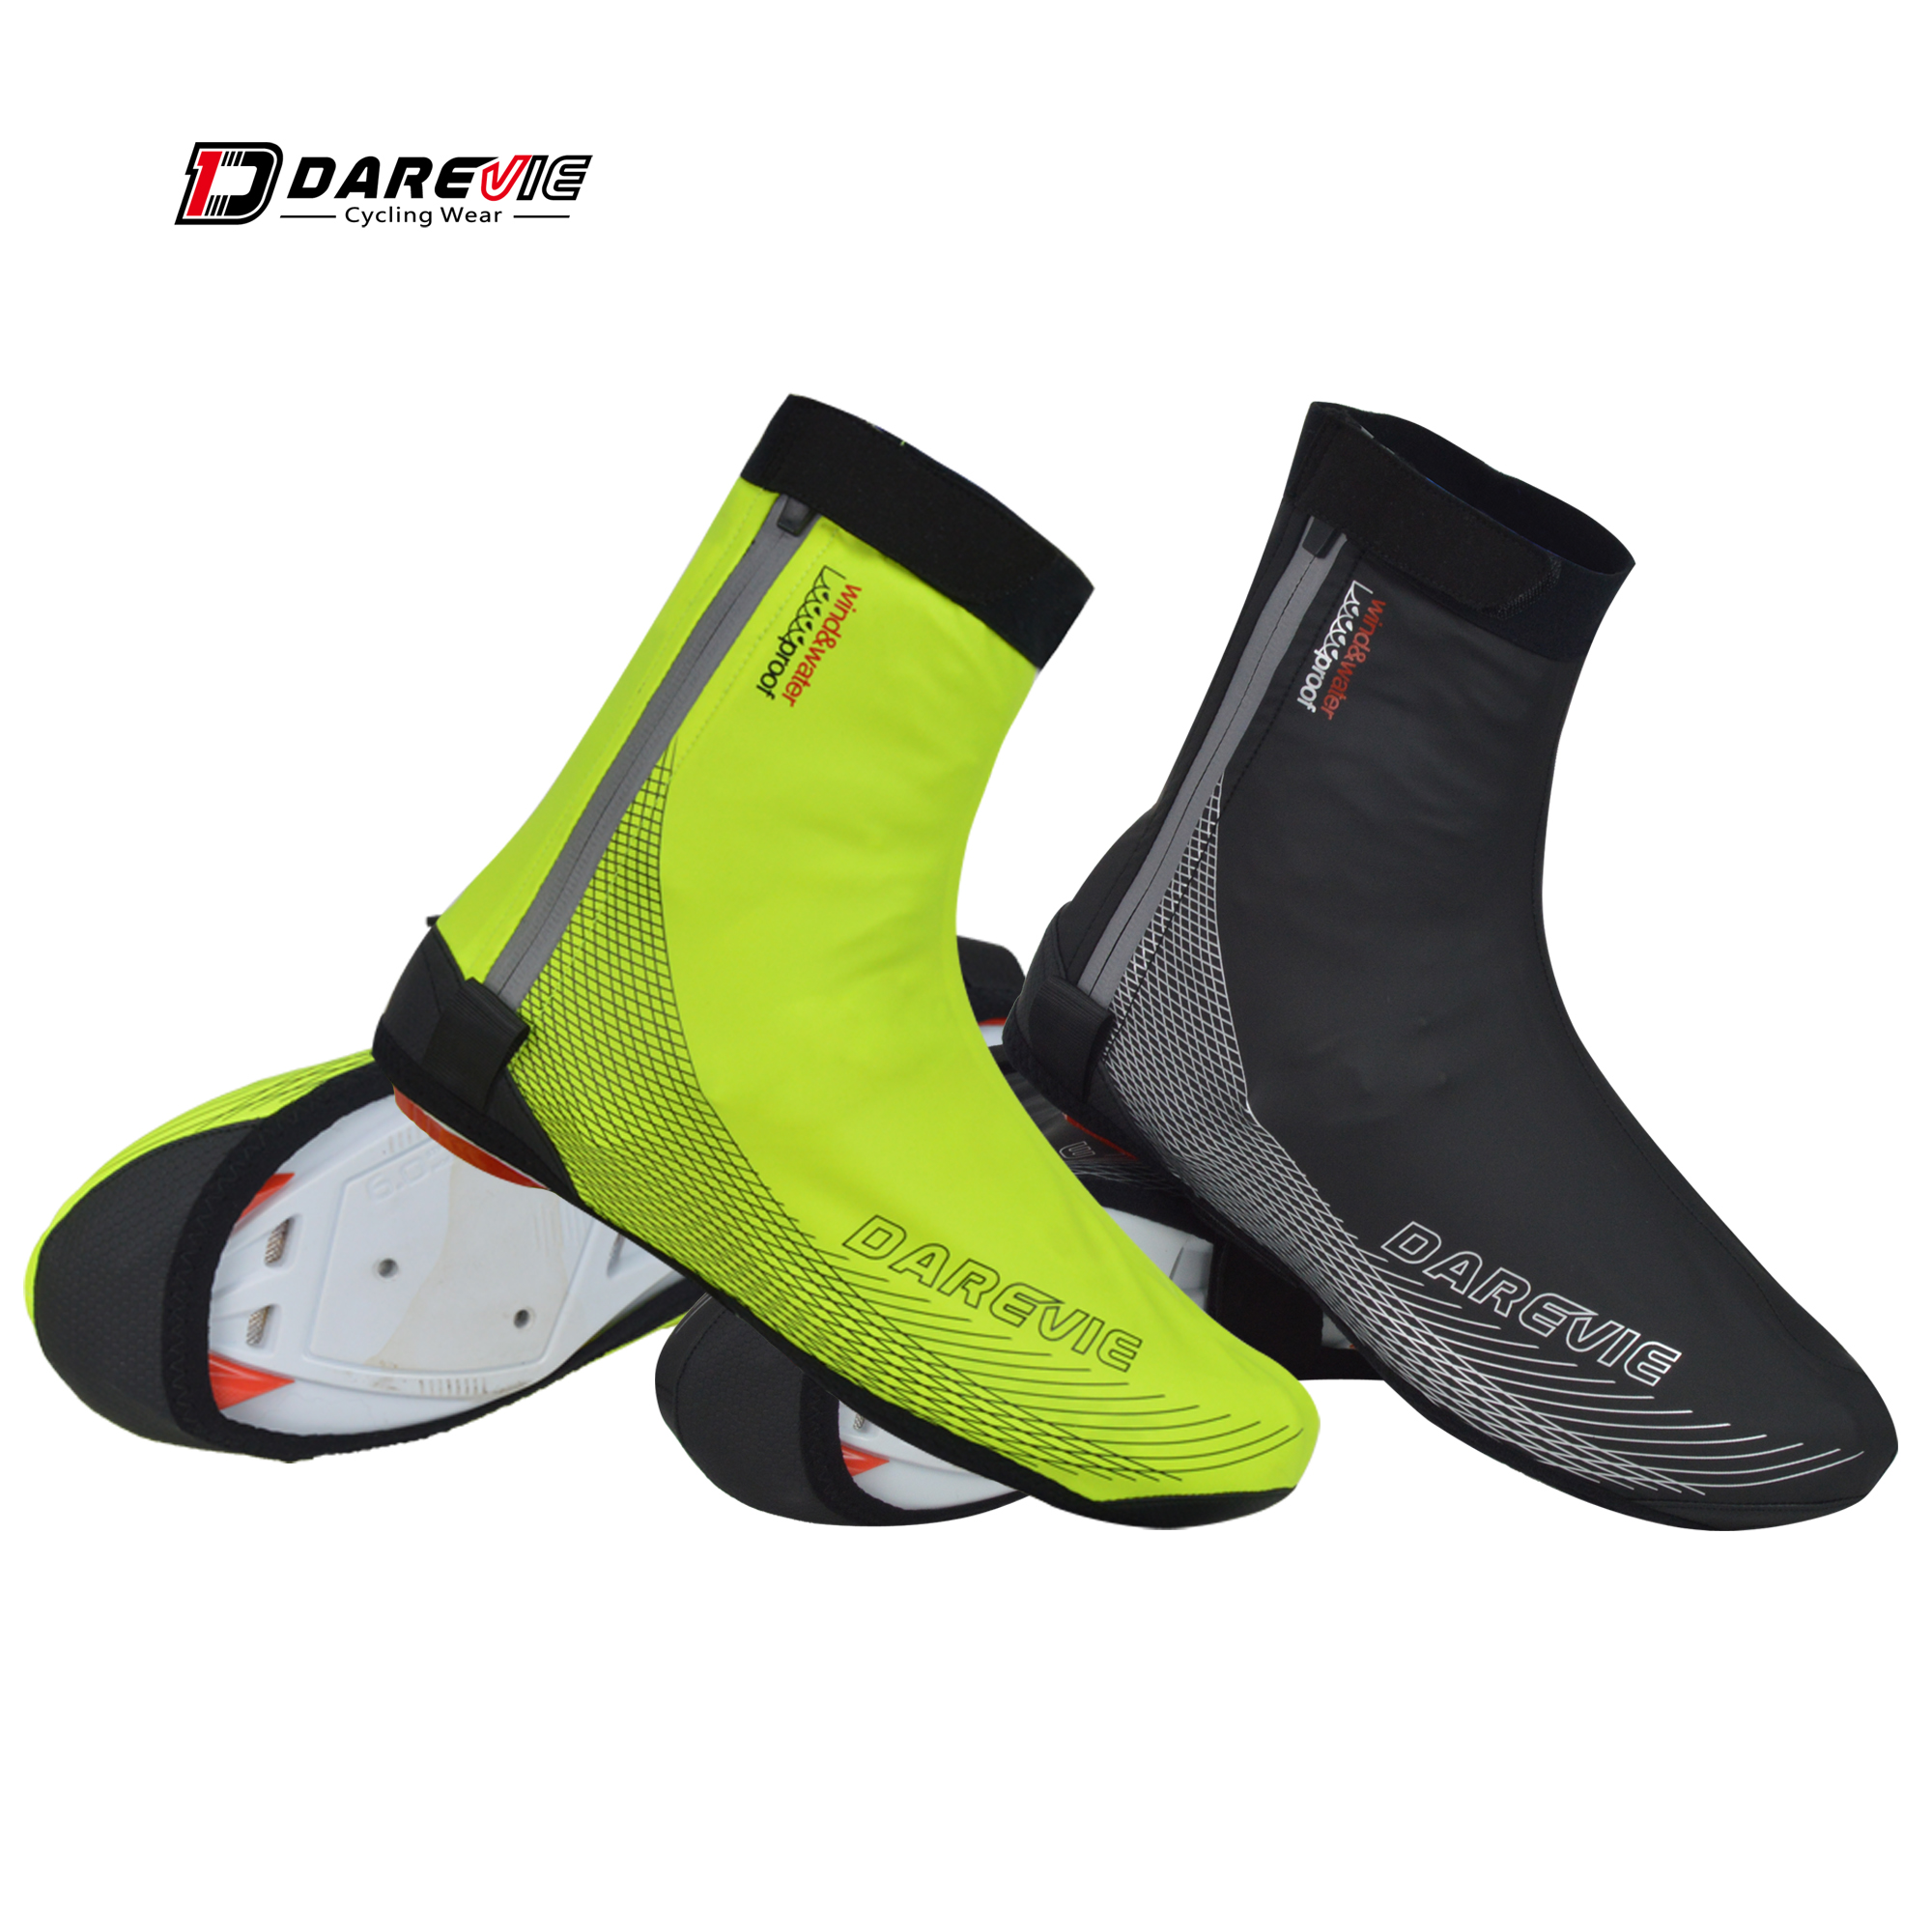 Darevie Cycling Shoes Covers Waterproof Windproof Cycling Shoes Cover Winter Thermal MTB Road Cycling Lock Shoes Cover Slippers(China)